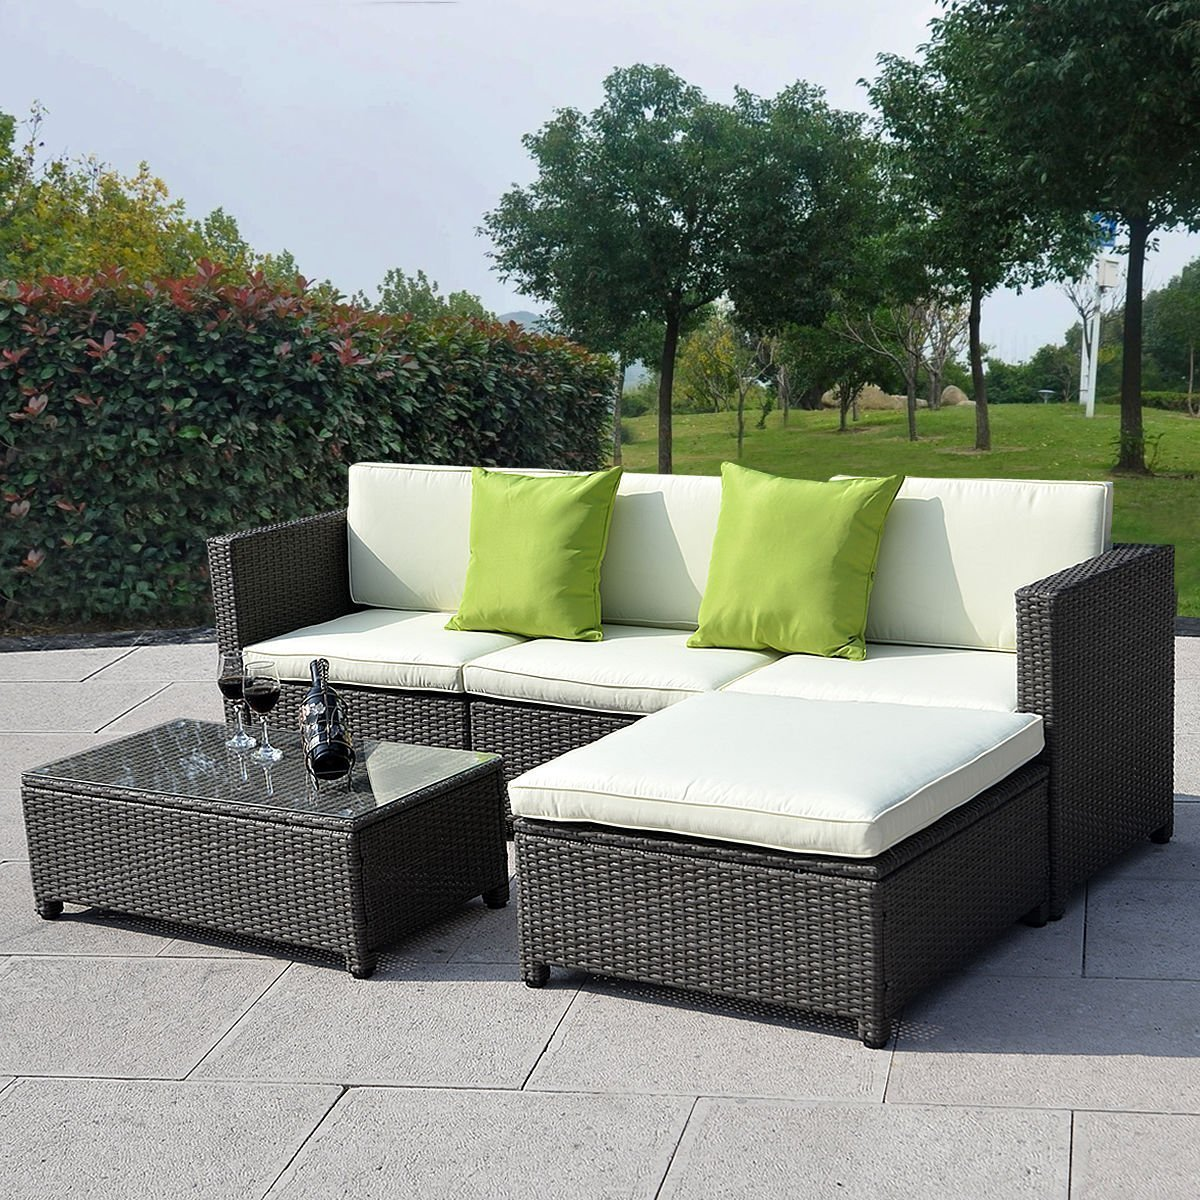 Amazon com   Goplus  Outdoor Patio 5PC Furniture Sectional PE Wicker Rattan  Sofa Set Deck Couch Black   Garden   Outdoor. Amazon com   Goplus  Outdoor Patio 5PC Furniture Sectional PE